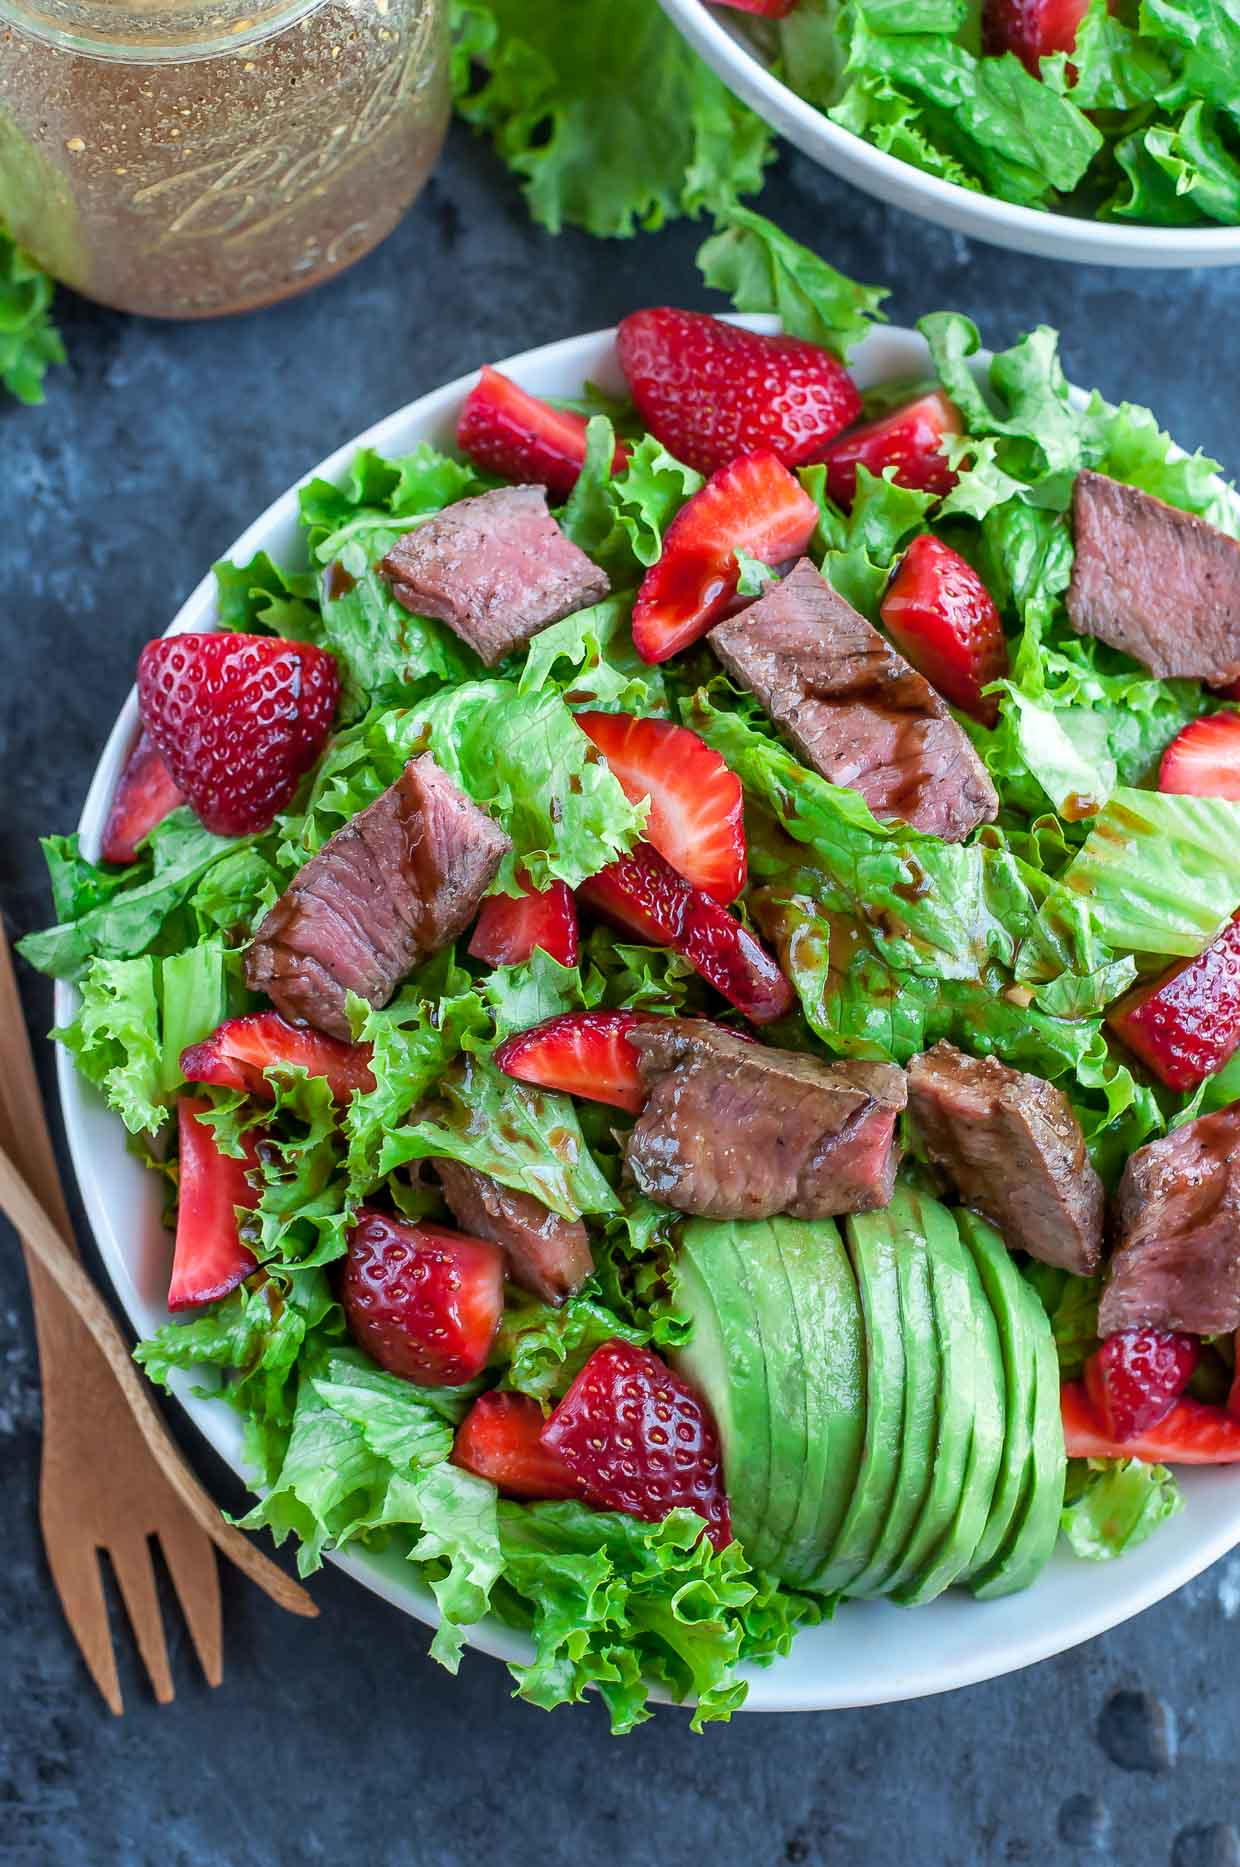 Strawberry Steak Salad With Homemade Balsamic Dressing